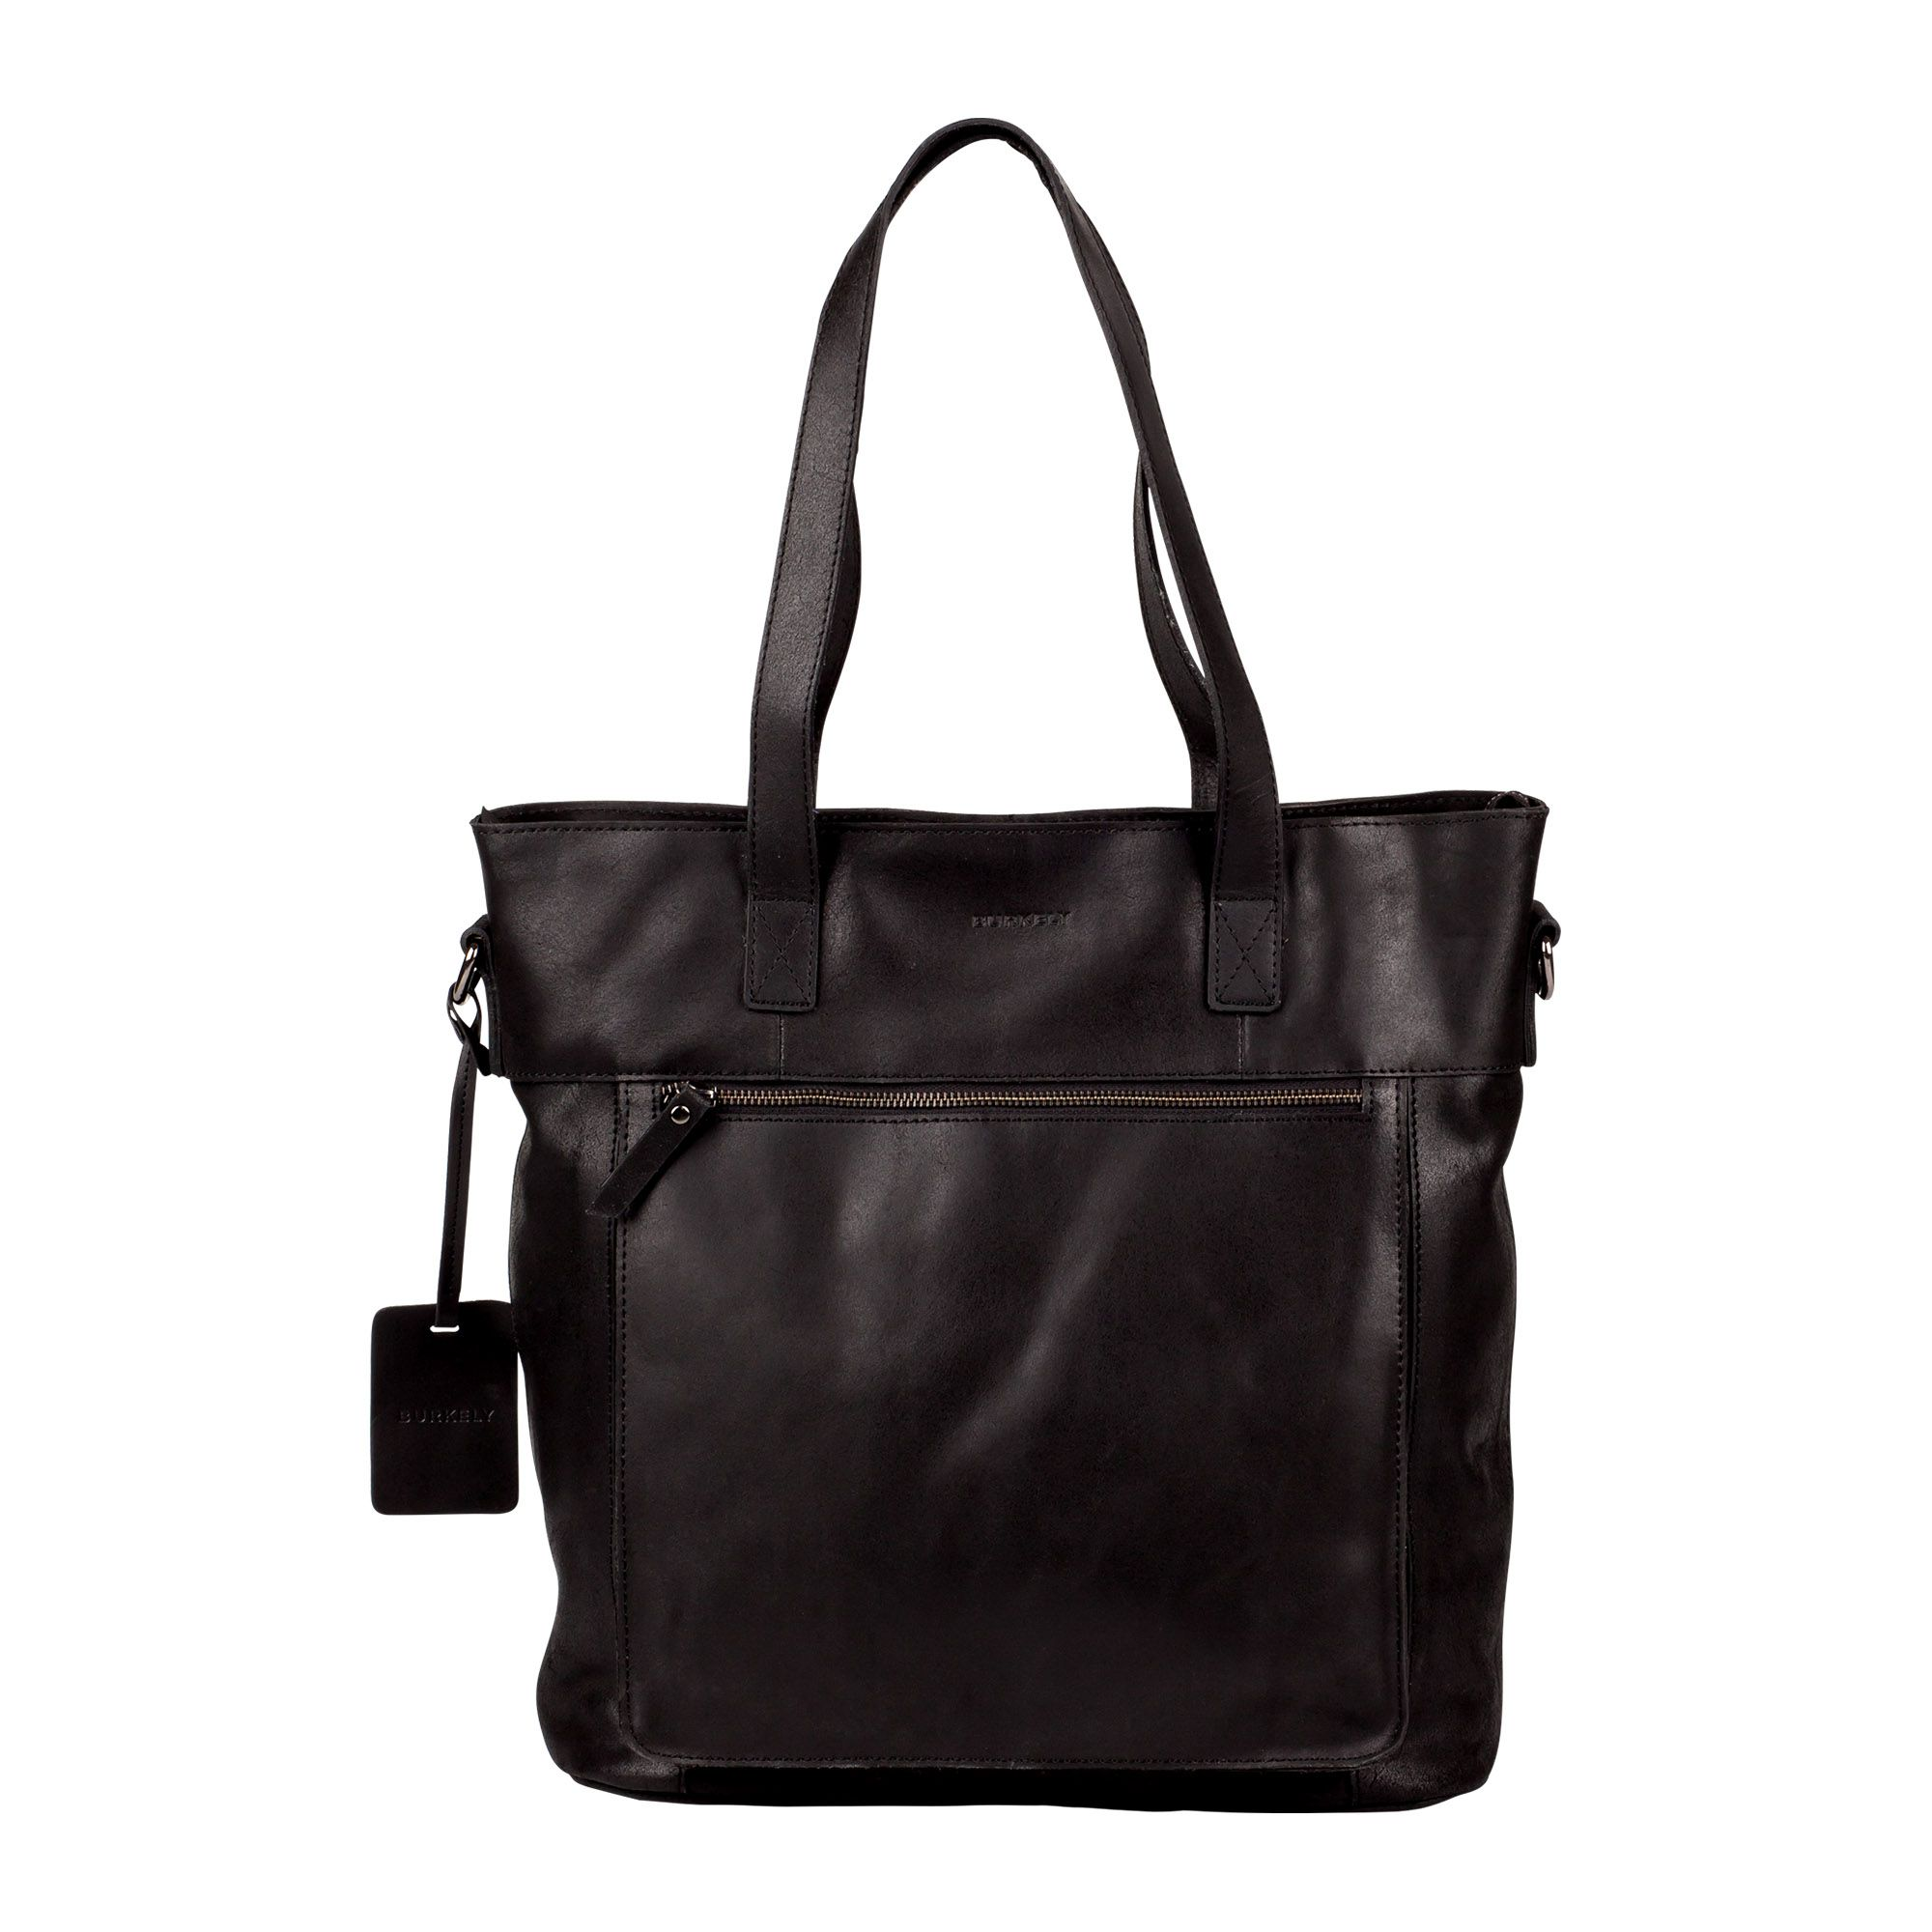 Laptoptas Burkely Jade Vintage Shopper Black 12 inch